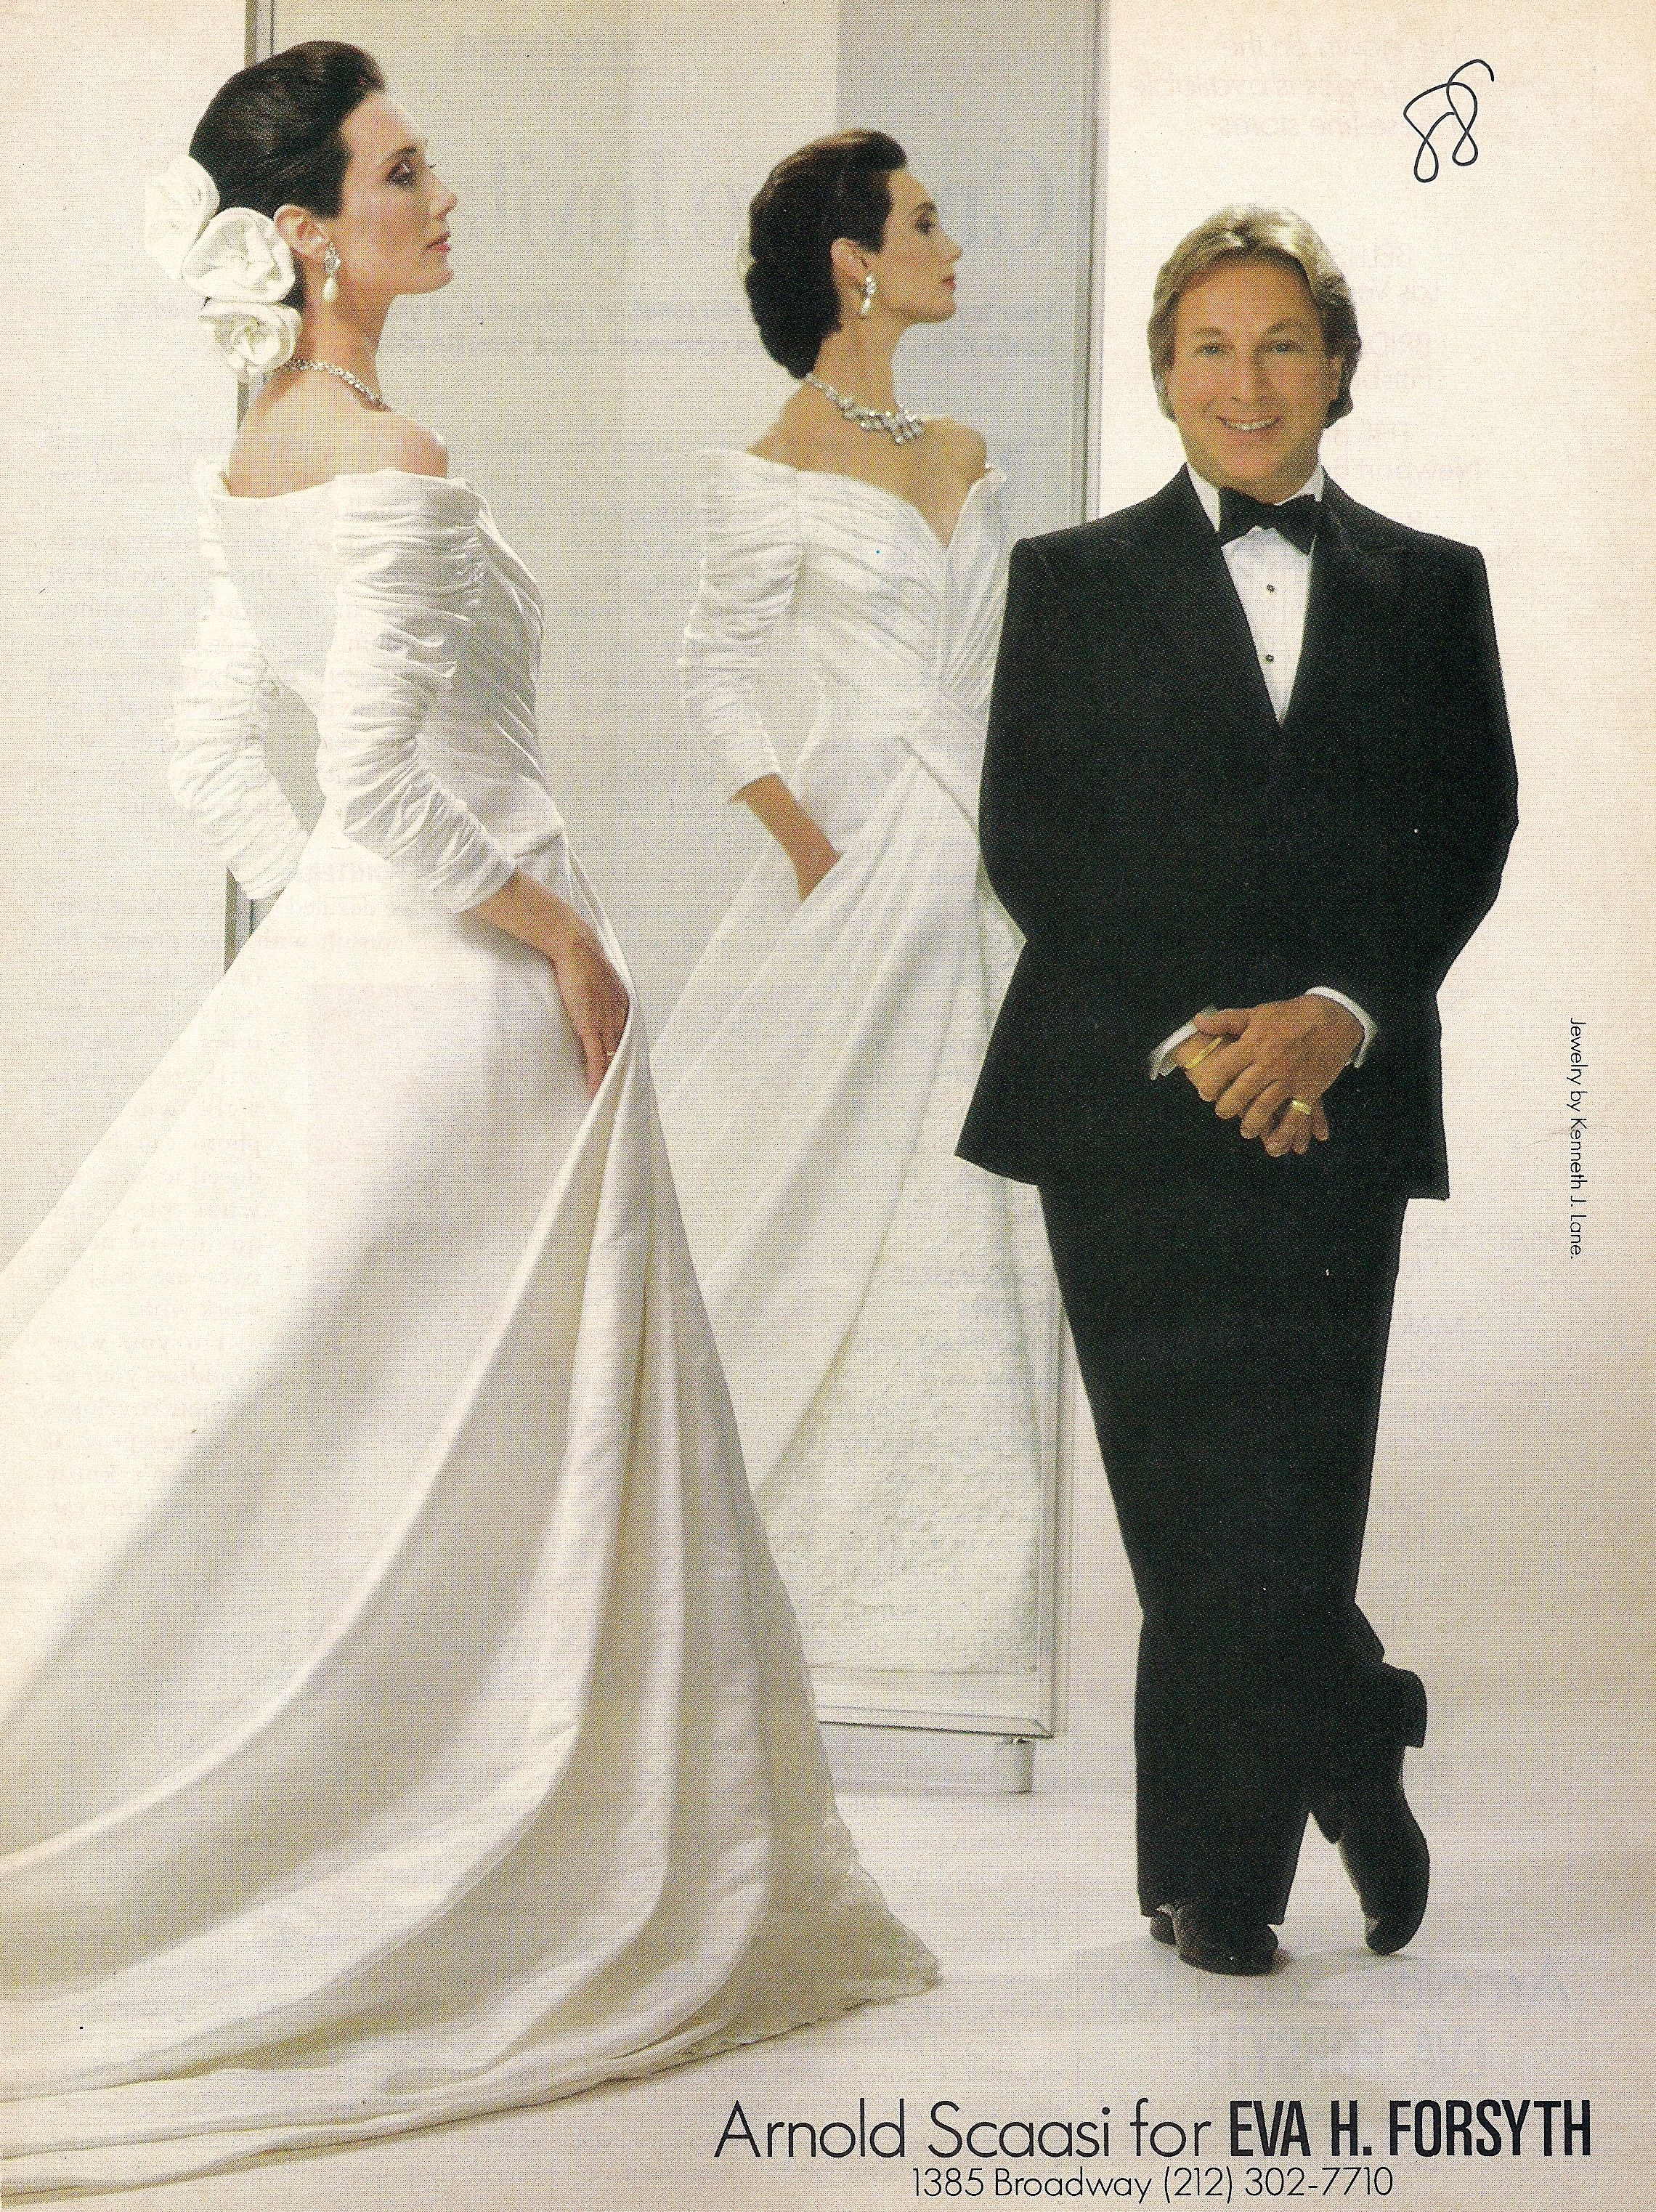 Atypical Restrained Bridal Gown From 1988 Designed By Arnold